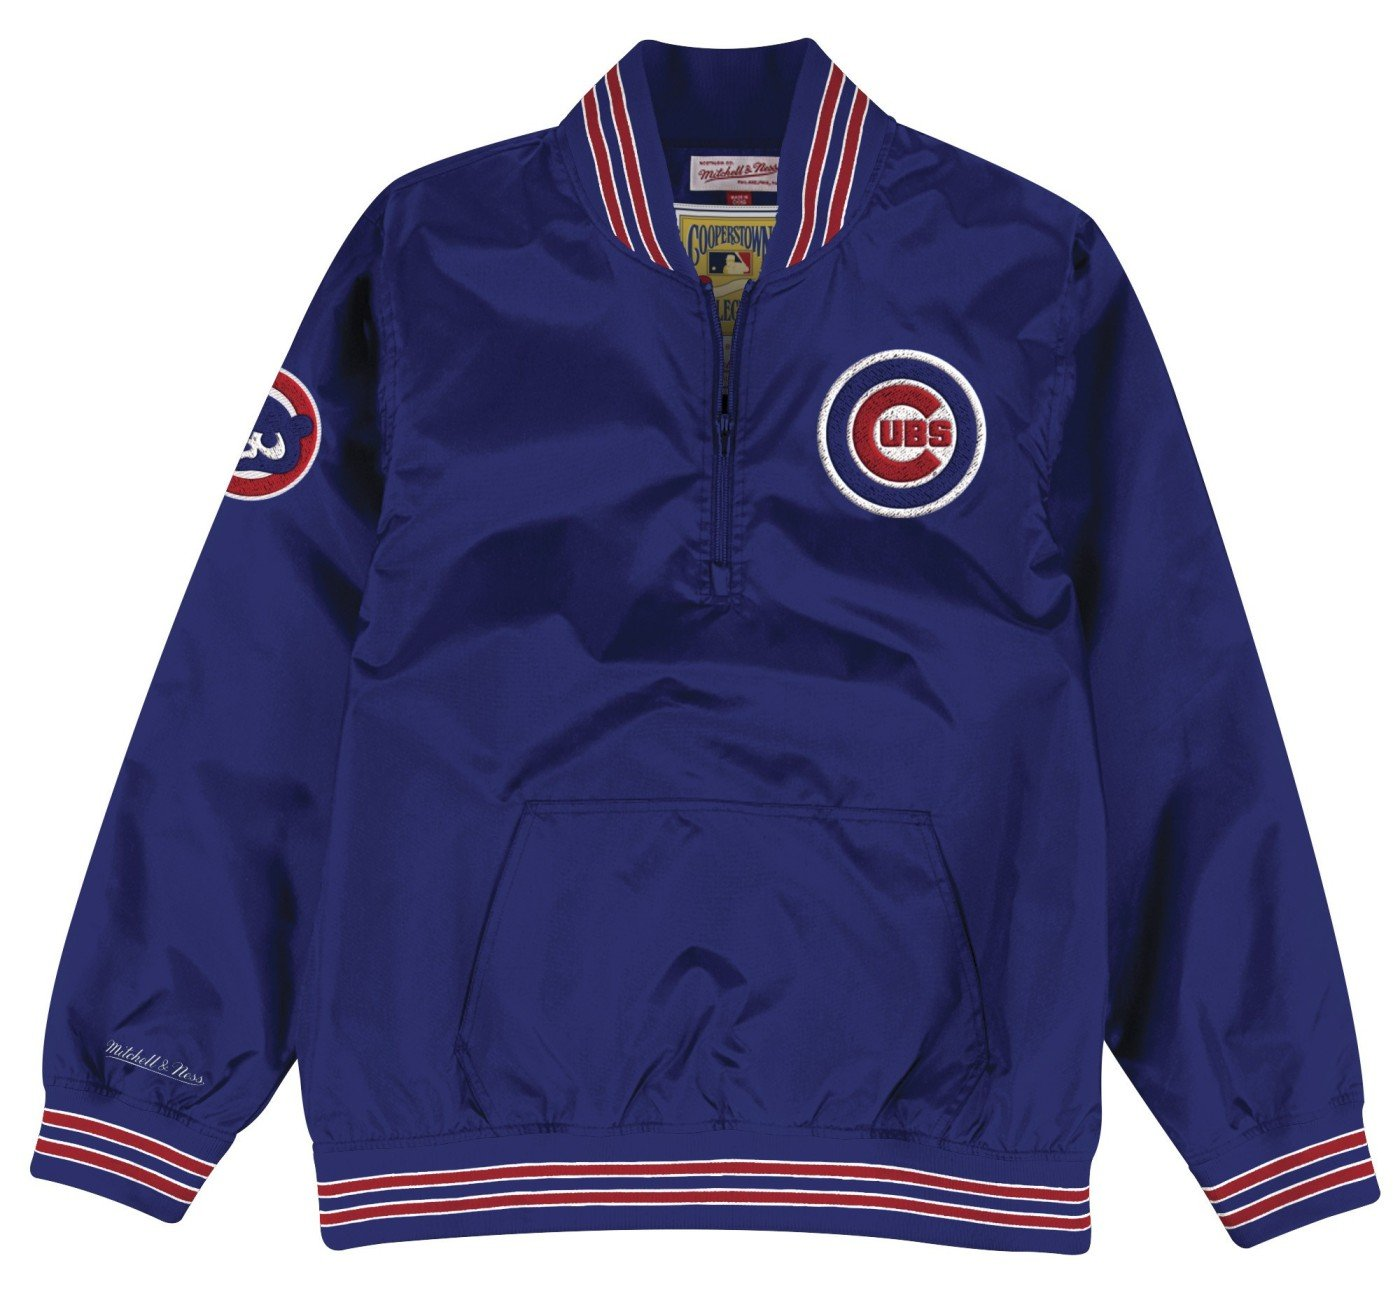 37c66d245e6 Amazon.com   Mitchell   Ness Chicago Cubs MLB Men s Slider 1 4 Zip Pullover  Jacket   Sports   Outdoors